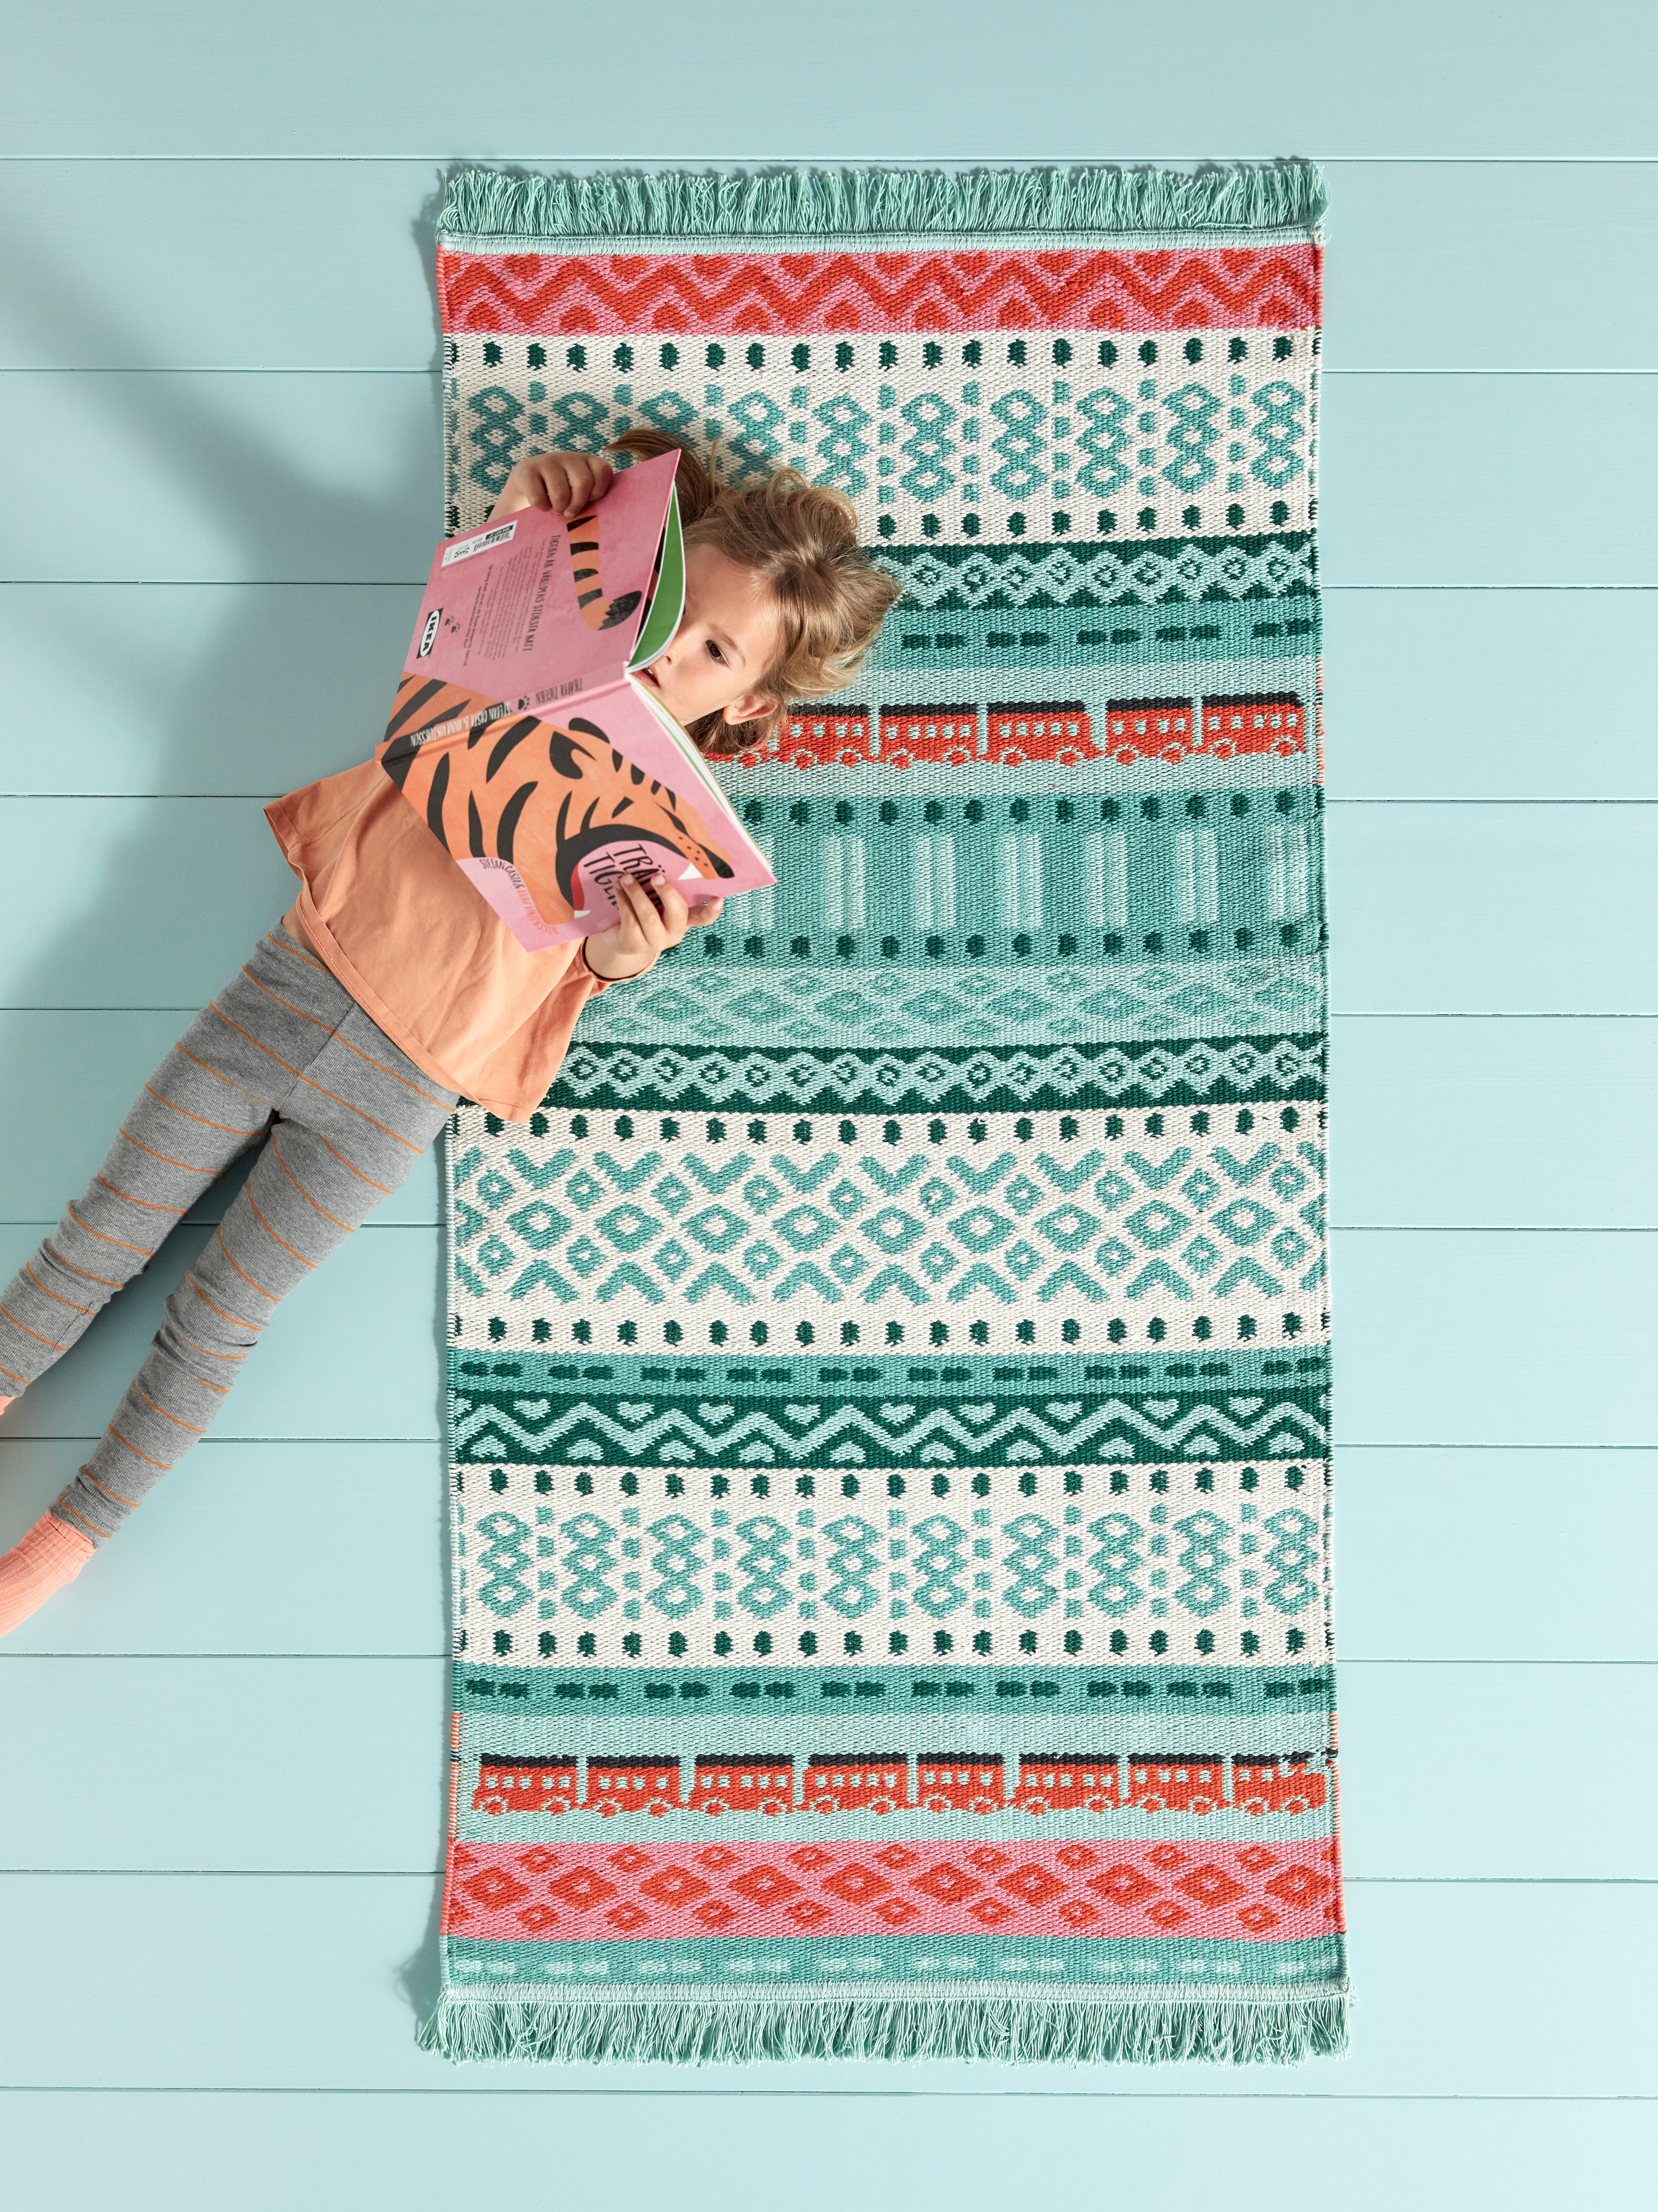 An aerial view of a child reading a book on a multicolor KÄPPHAST flatwoven rug. It has patterns like zigzags and trains.